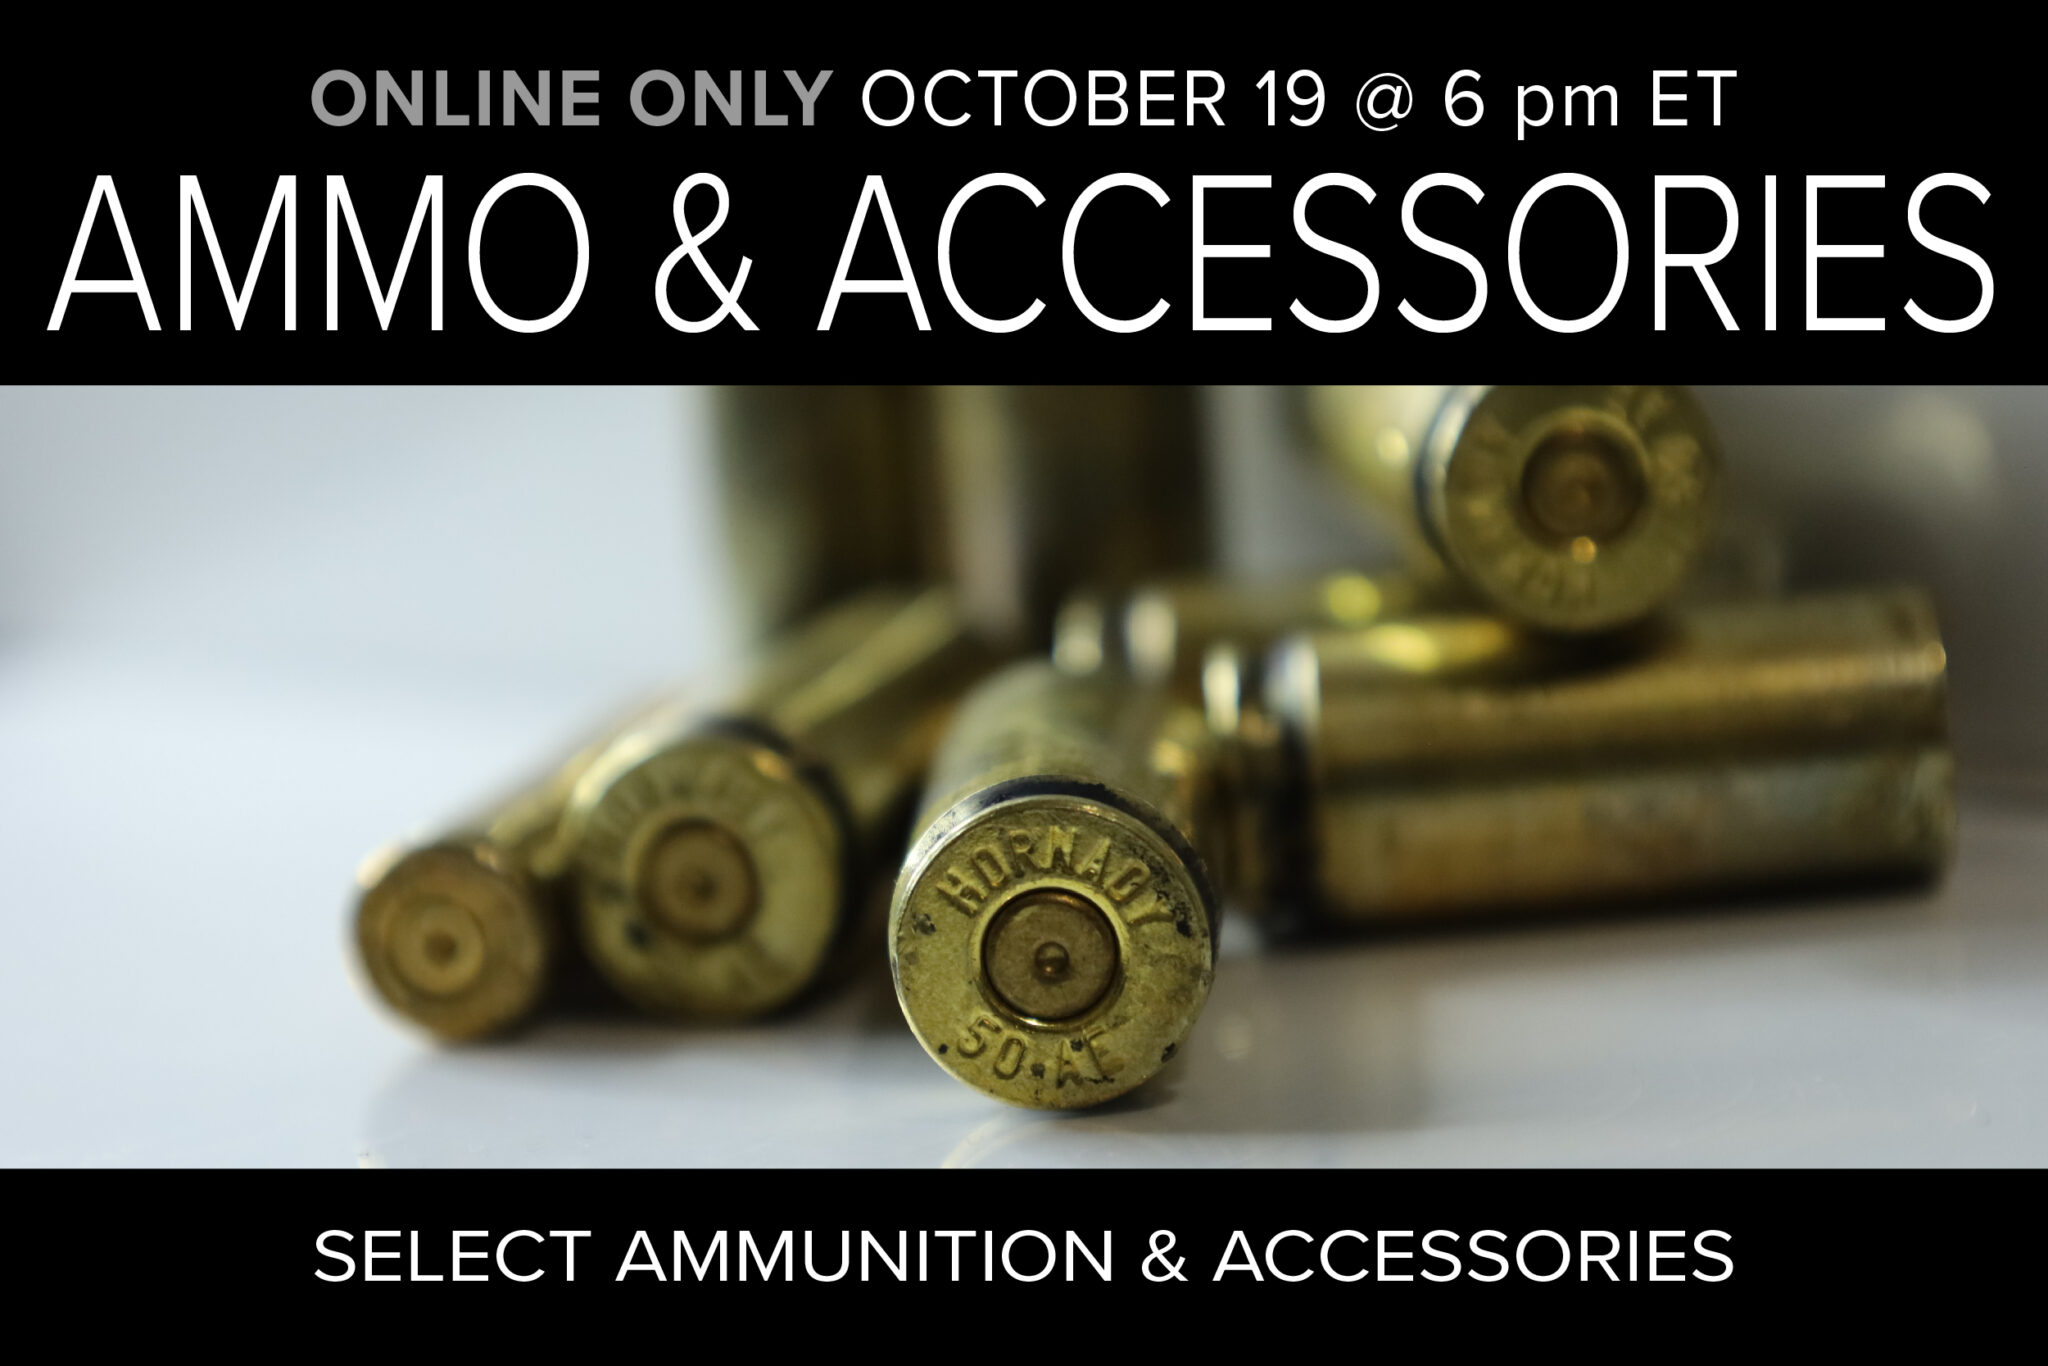 Ammo & Accessories auction October 19